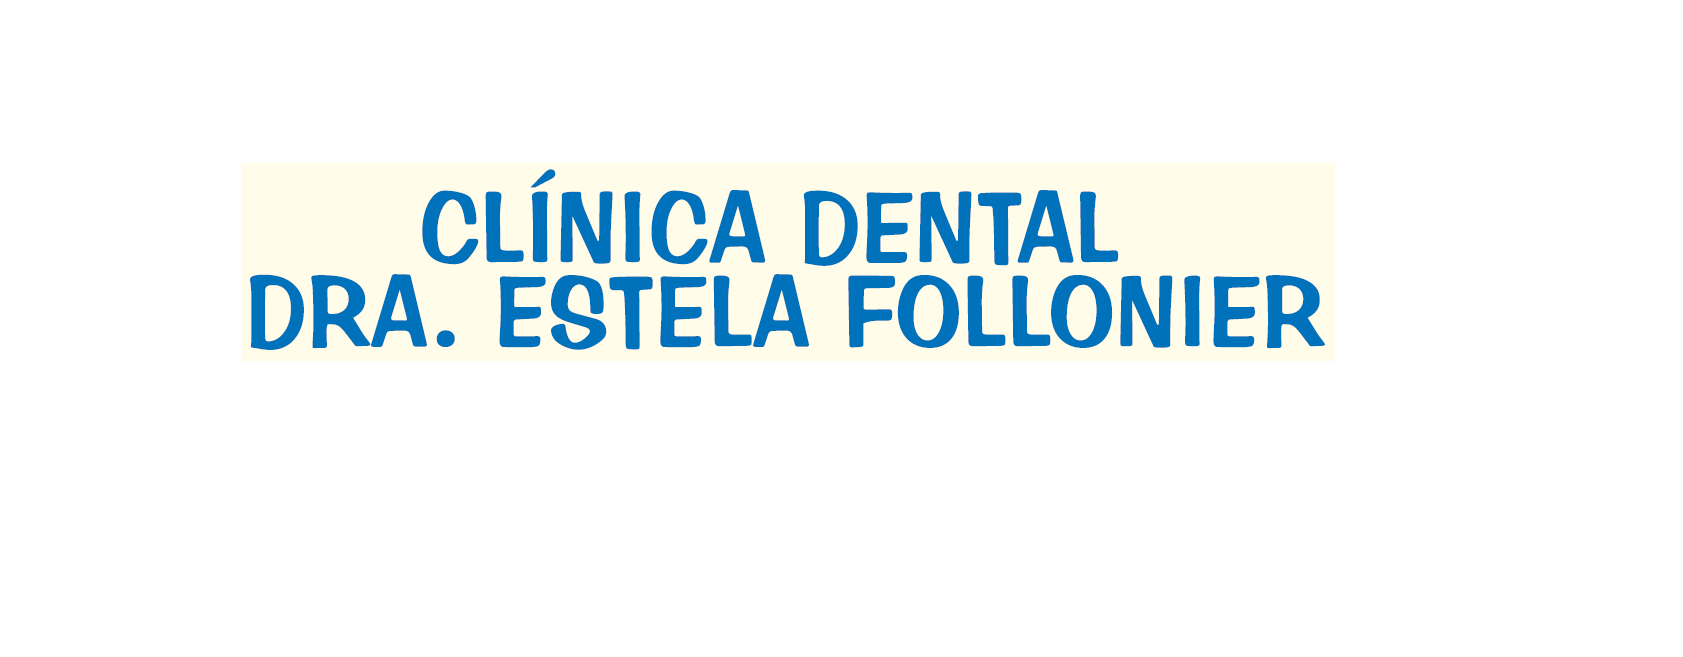 Clínica Dental Dra. Estela Follonier